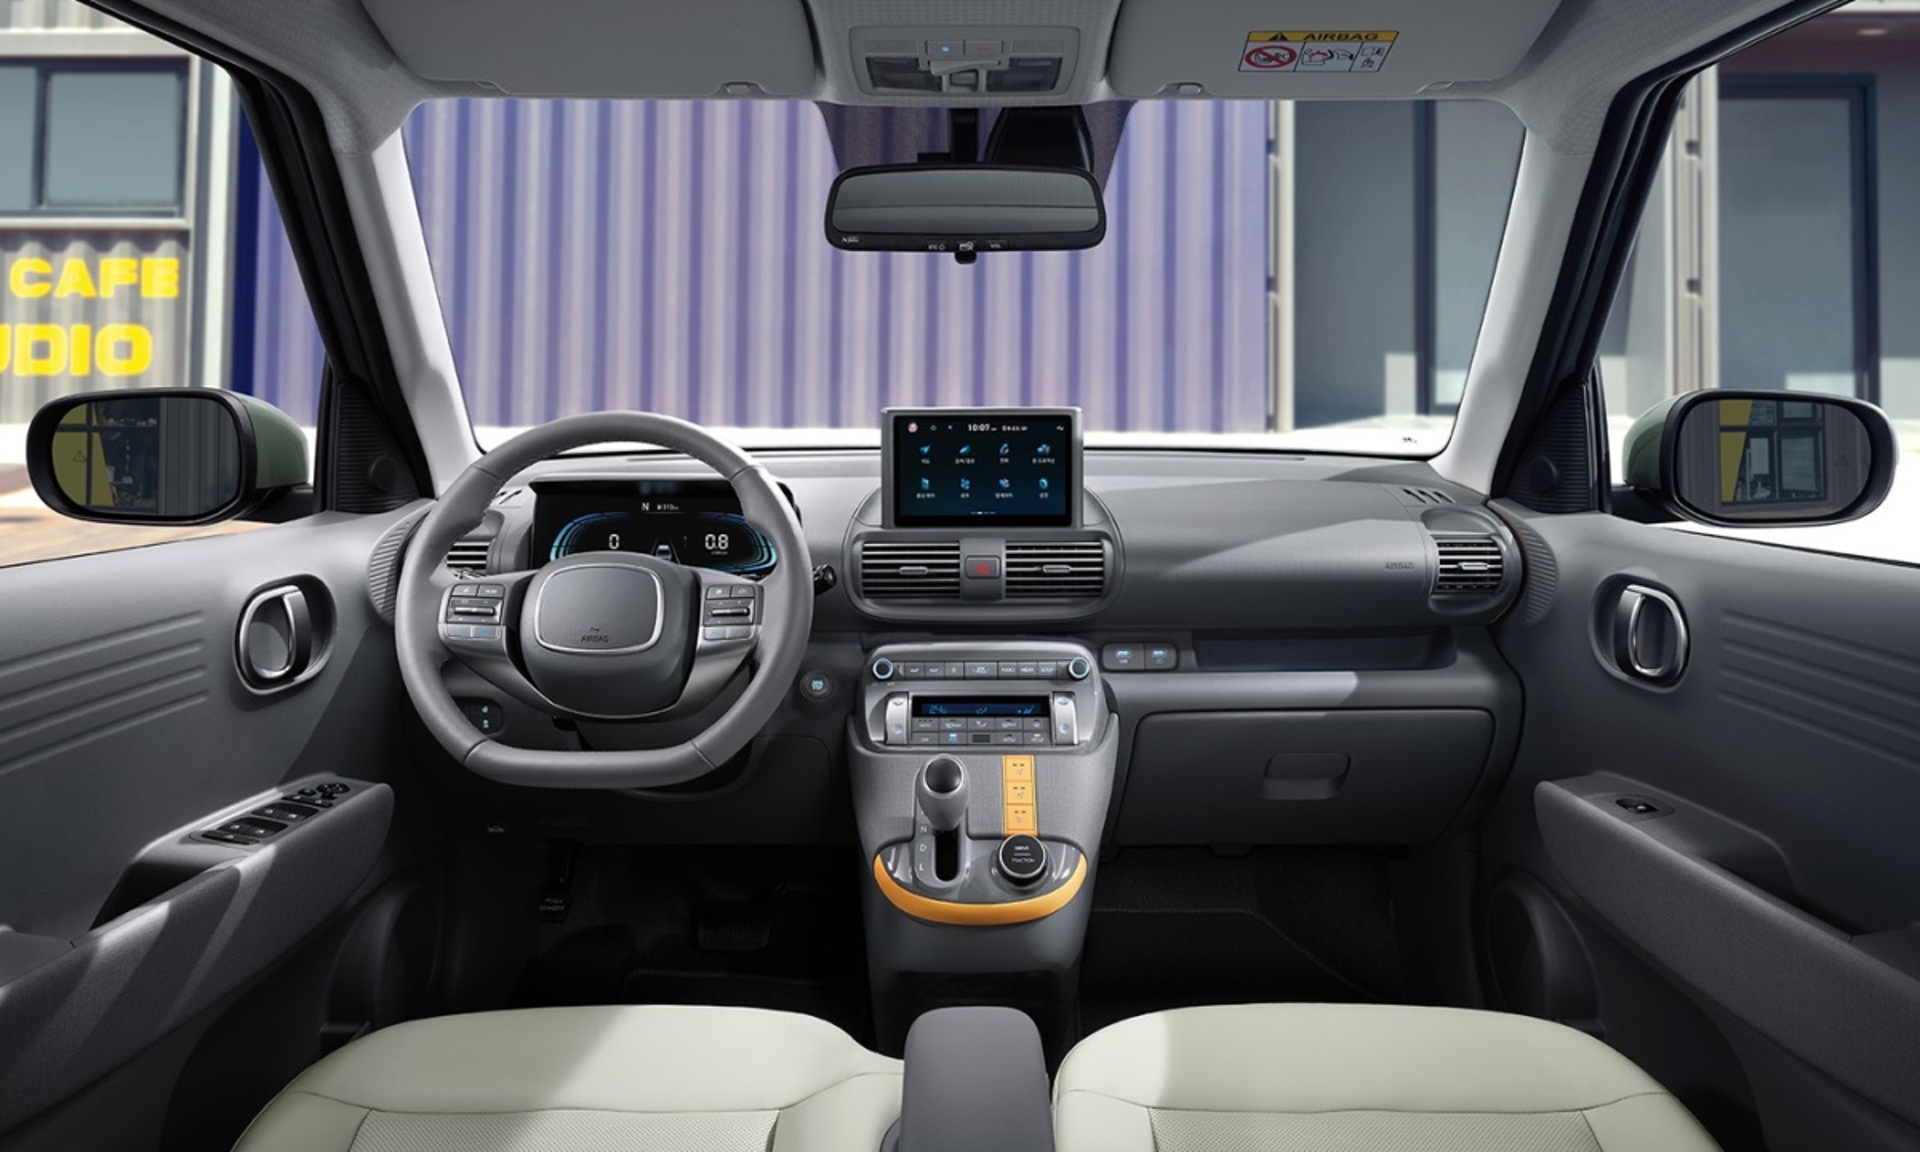 Hyundai Casper interior and key standard features officially revealed